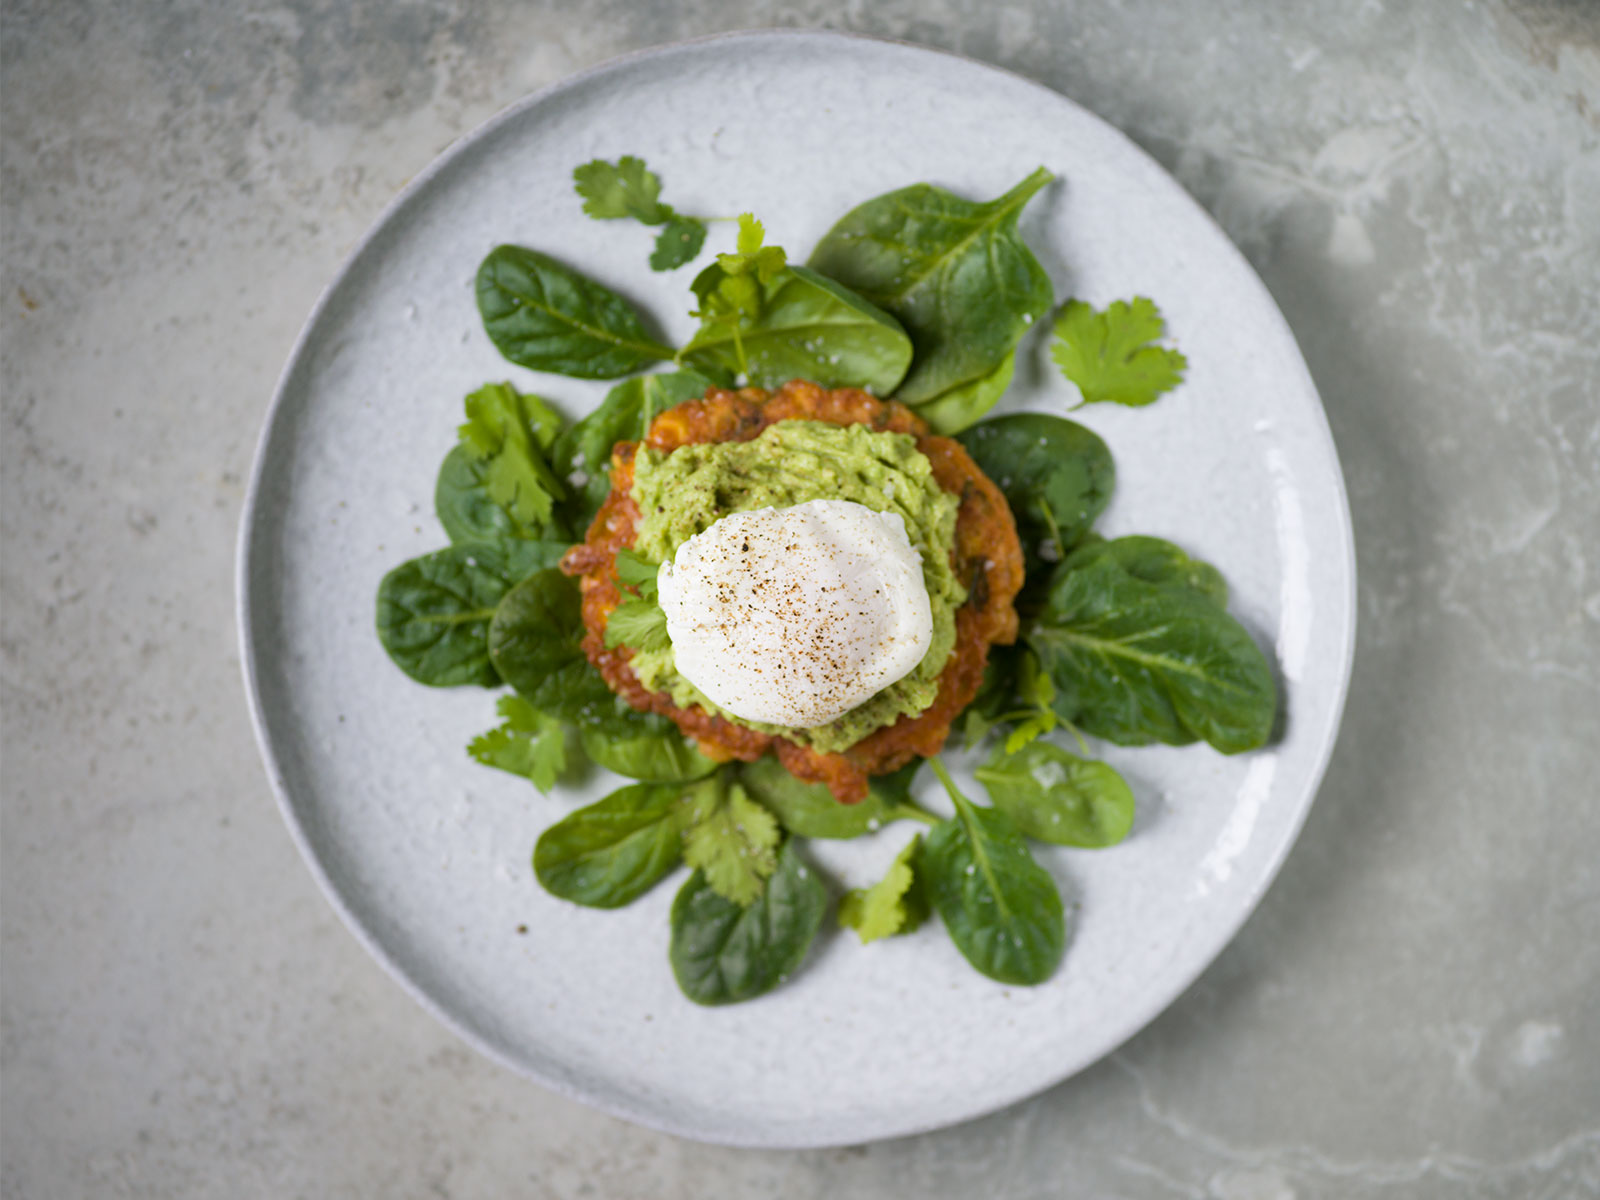 Sweetcorn Fritters, mashed avocado and salad, topped with a poached egg